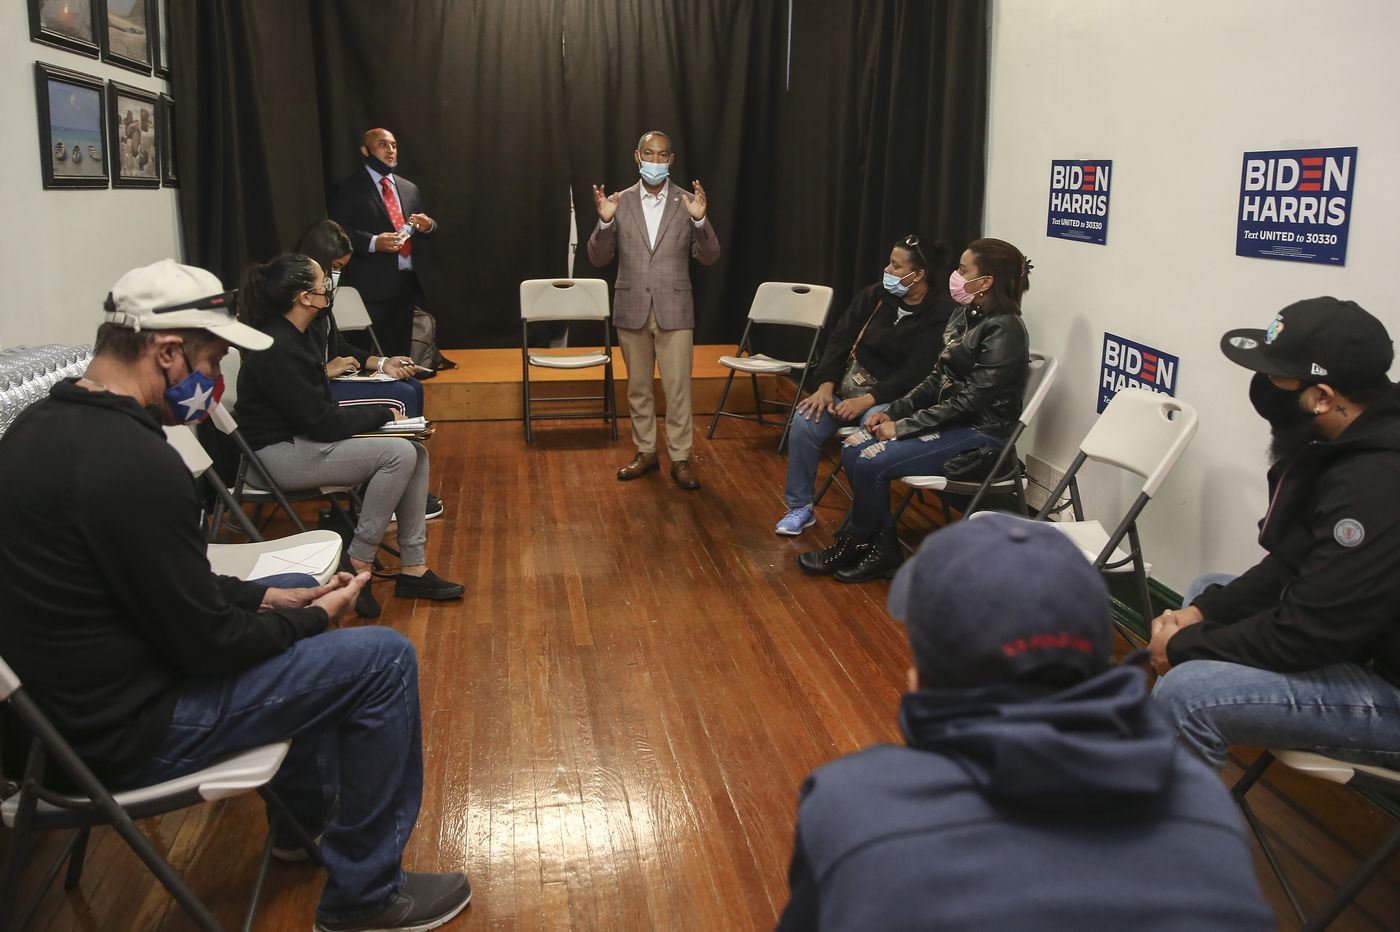 Latinos in Pennsylvania worry the Biden campaign's outreach is coming too late